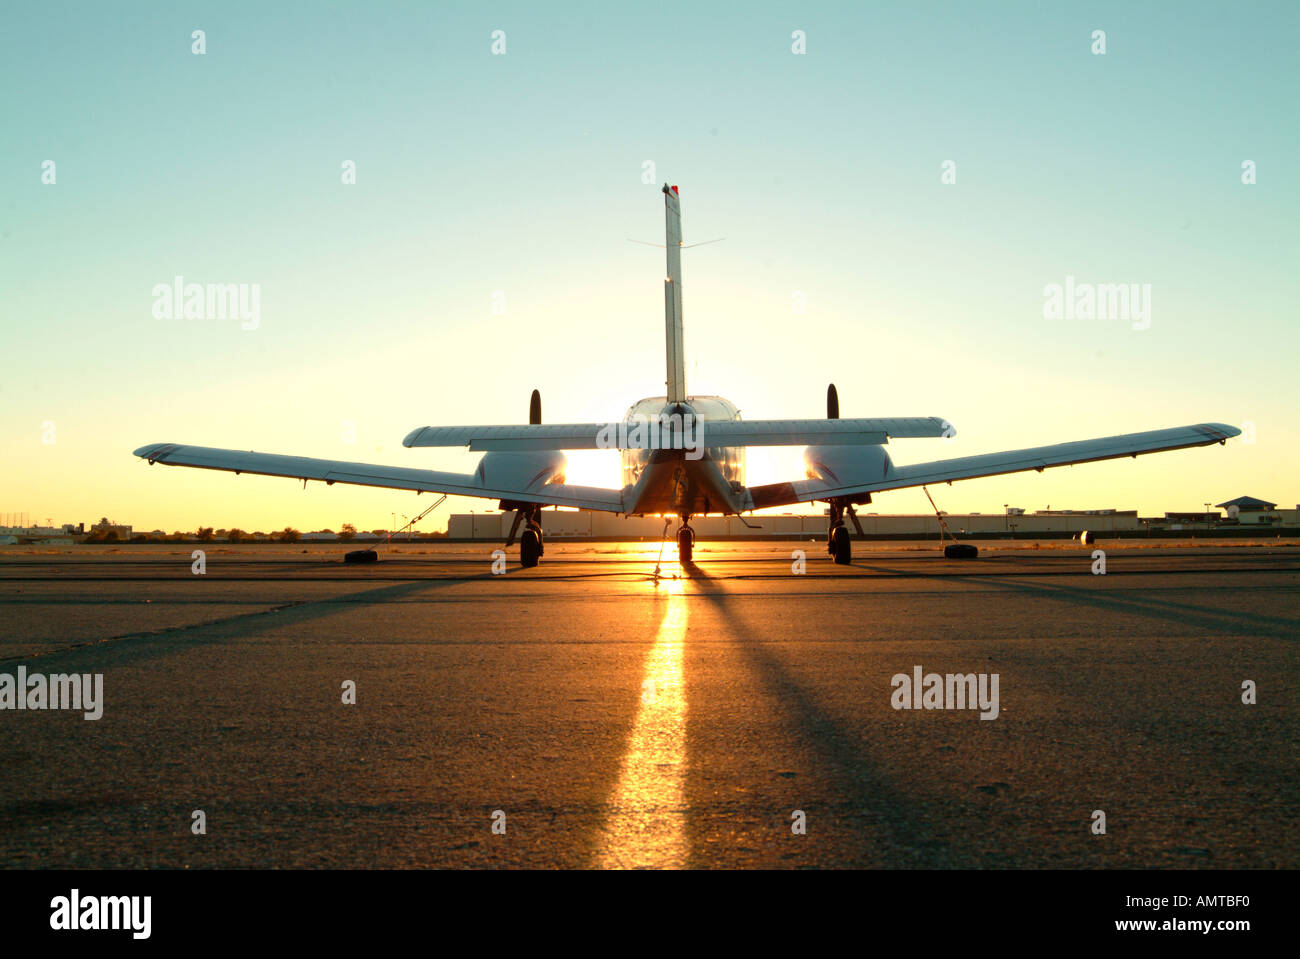 A twin engine plane on the tarmac at sunset - Stock Image